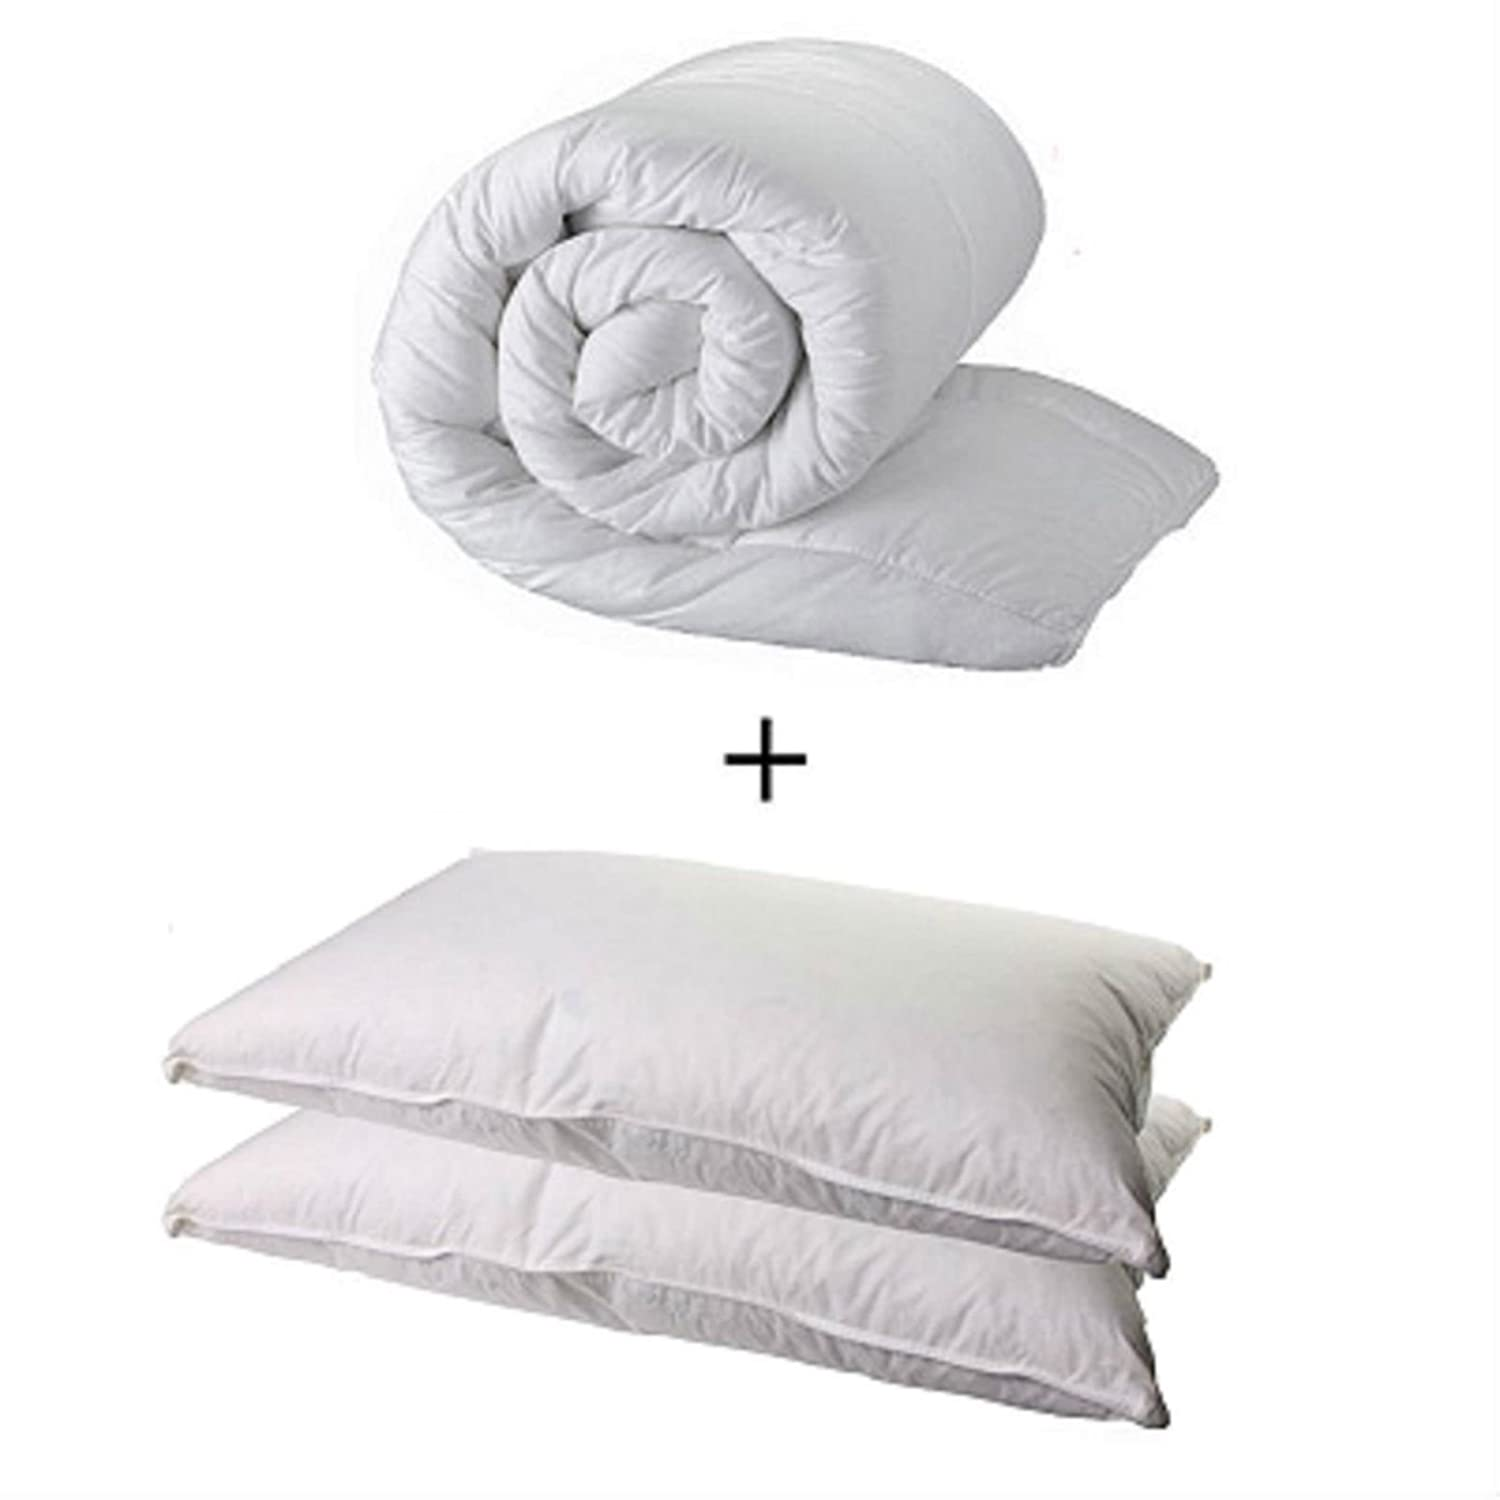 KING SIZE DUVET & 2 DELUXE PILLOWS - KING 15.0 TOG QUILT & 2 SUPERFIRM PILLOWS Uk Factory